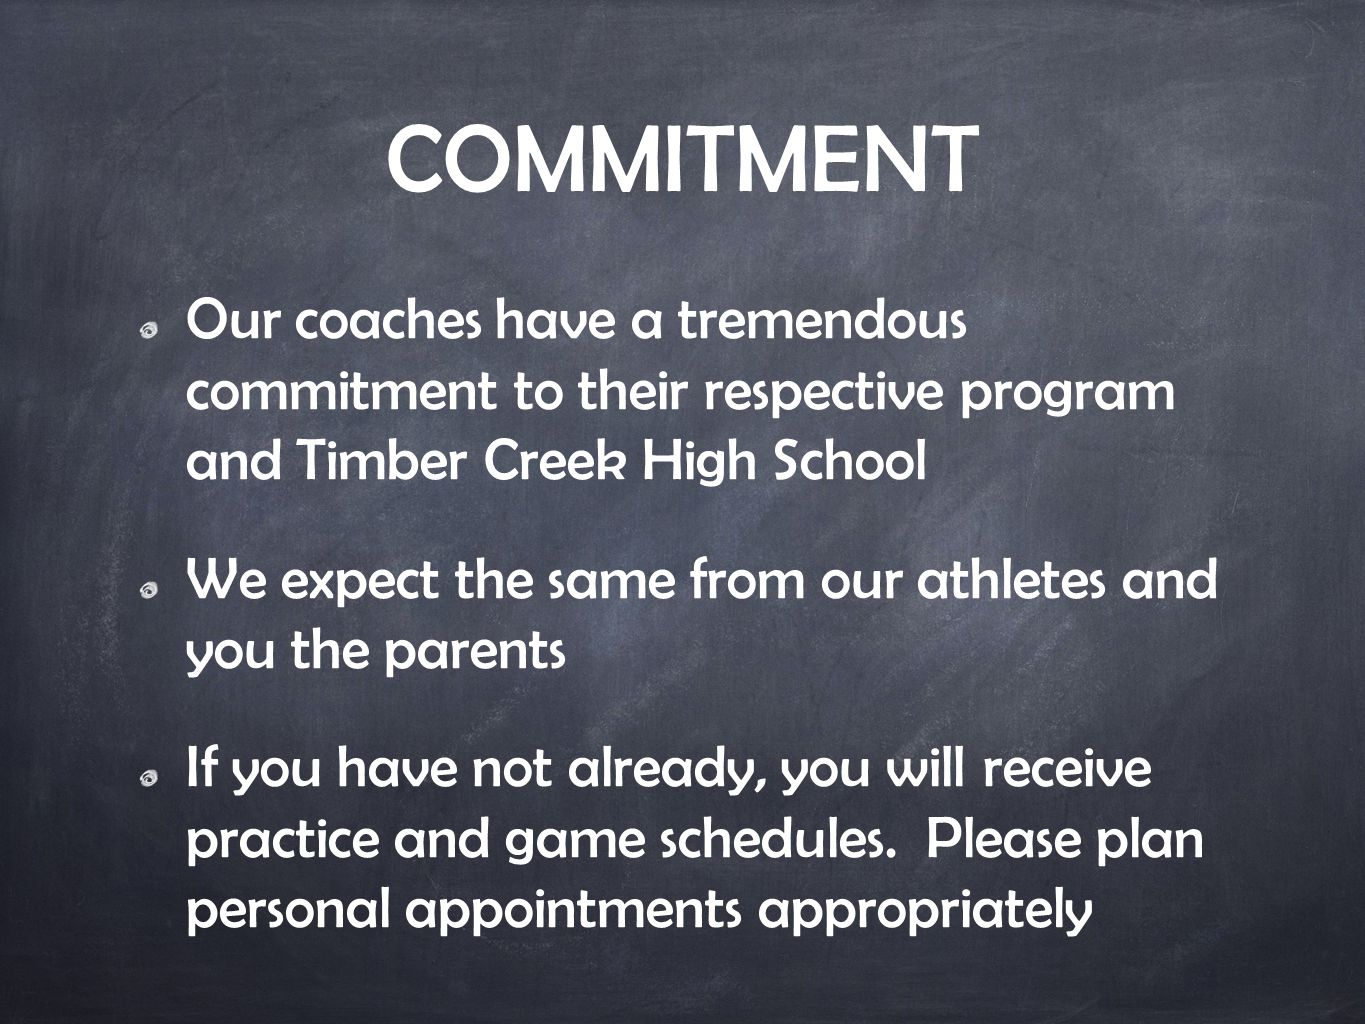 COMMITMENT Our coaches have a tremendous commitment to their respective program and Timber Creek High School We expect the same from our athletes and you the parents If you have not already, you will receive practice and game schedules.